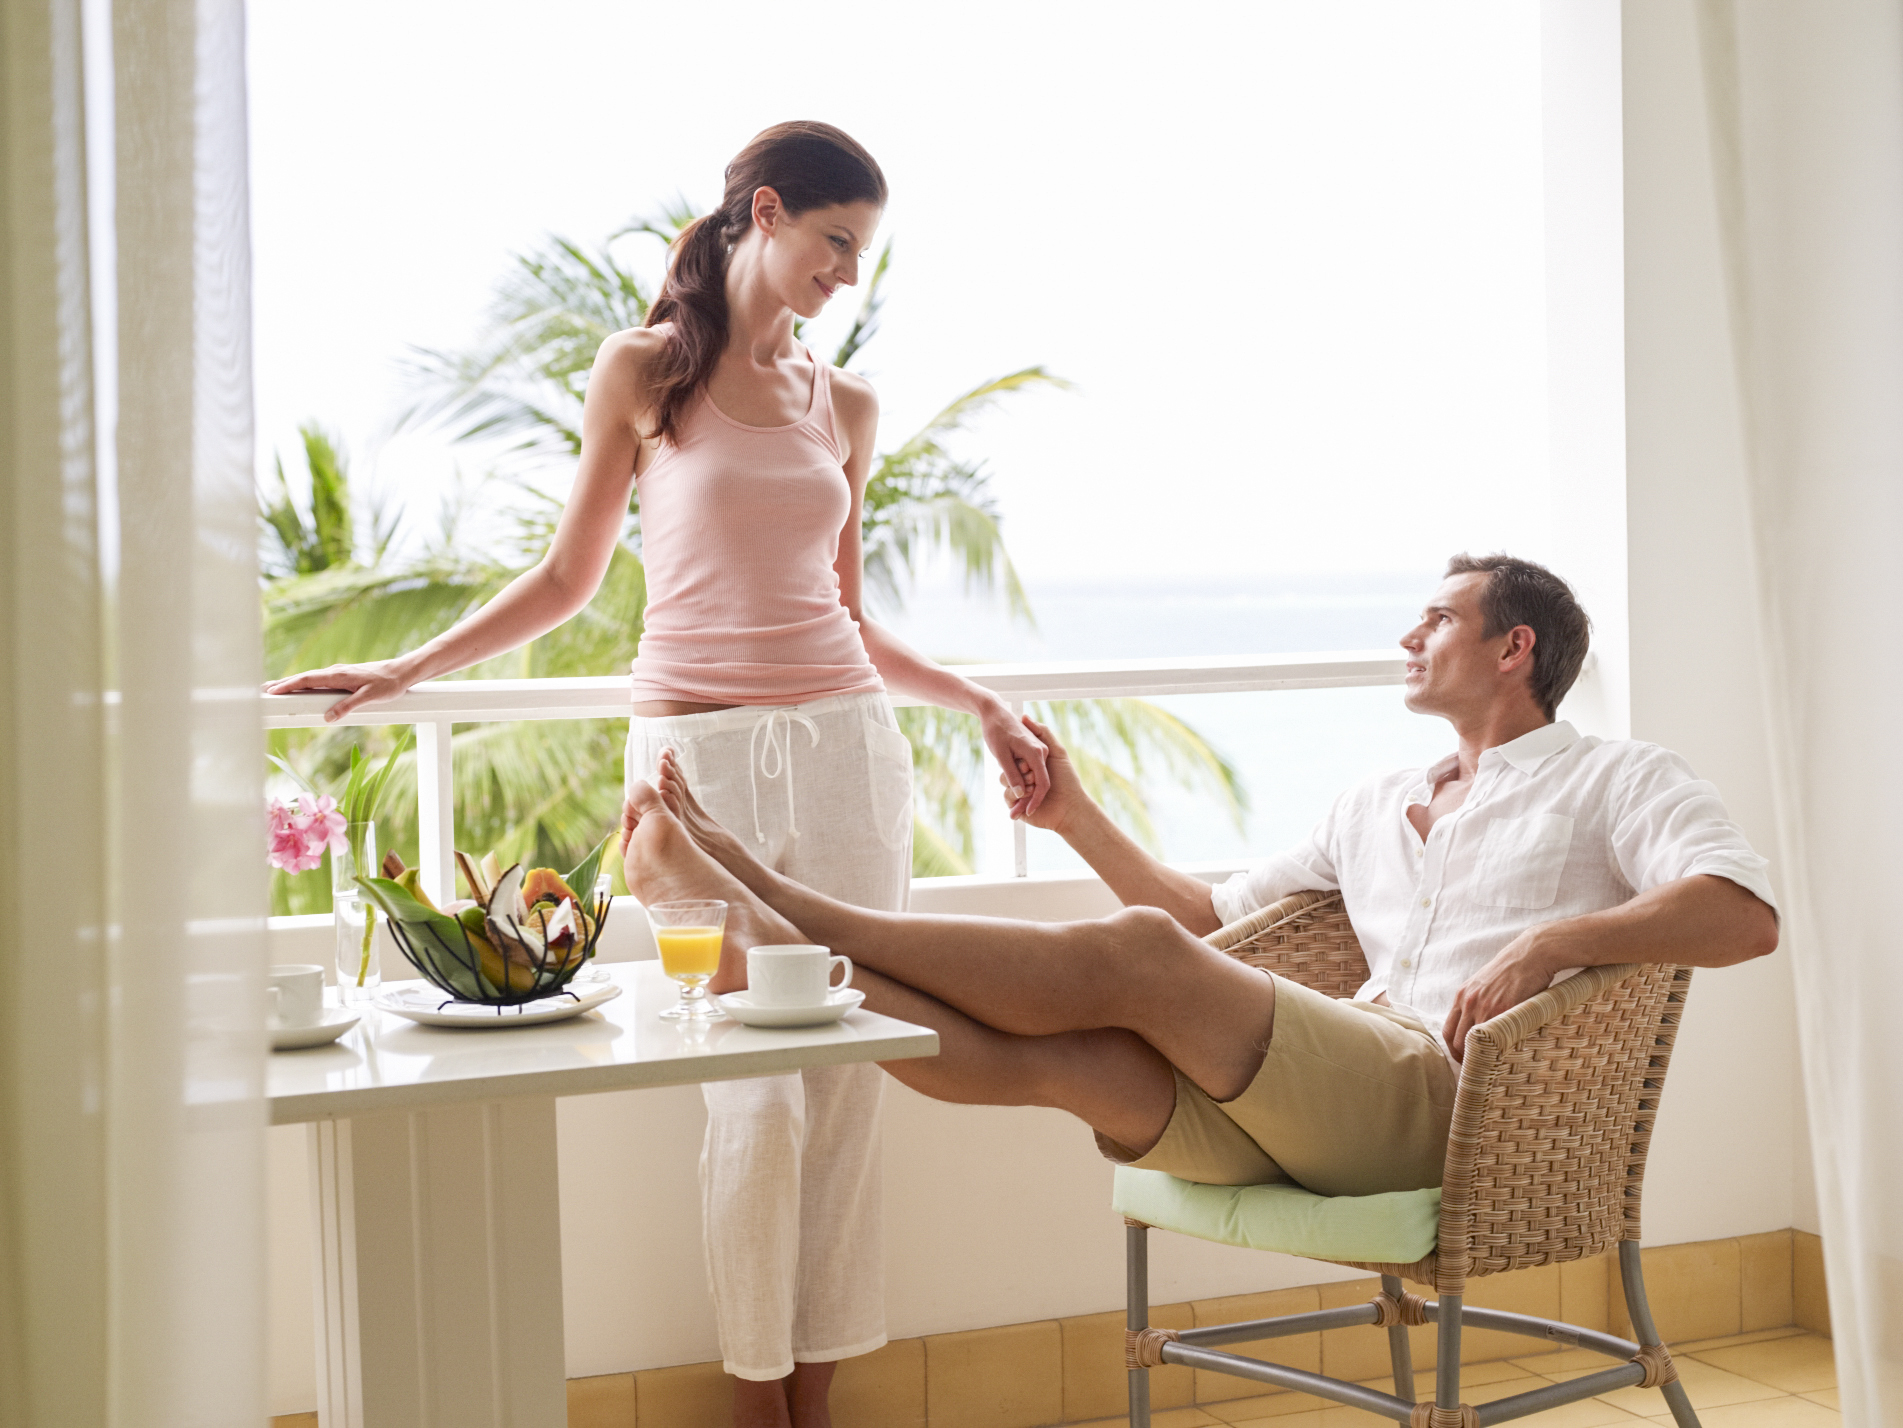 Travel Agency All-Inclusive Resort Couples Tower Isle 40